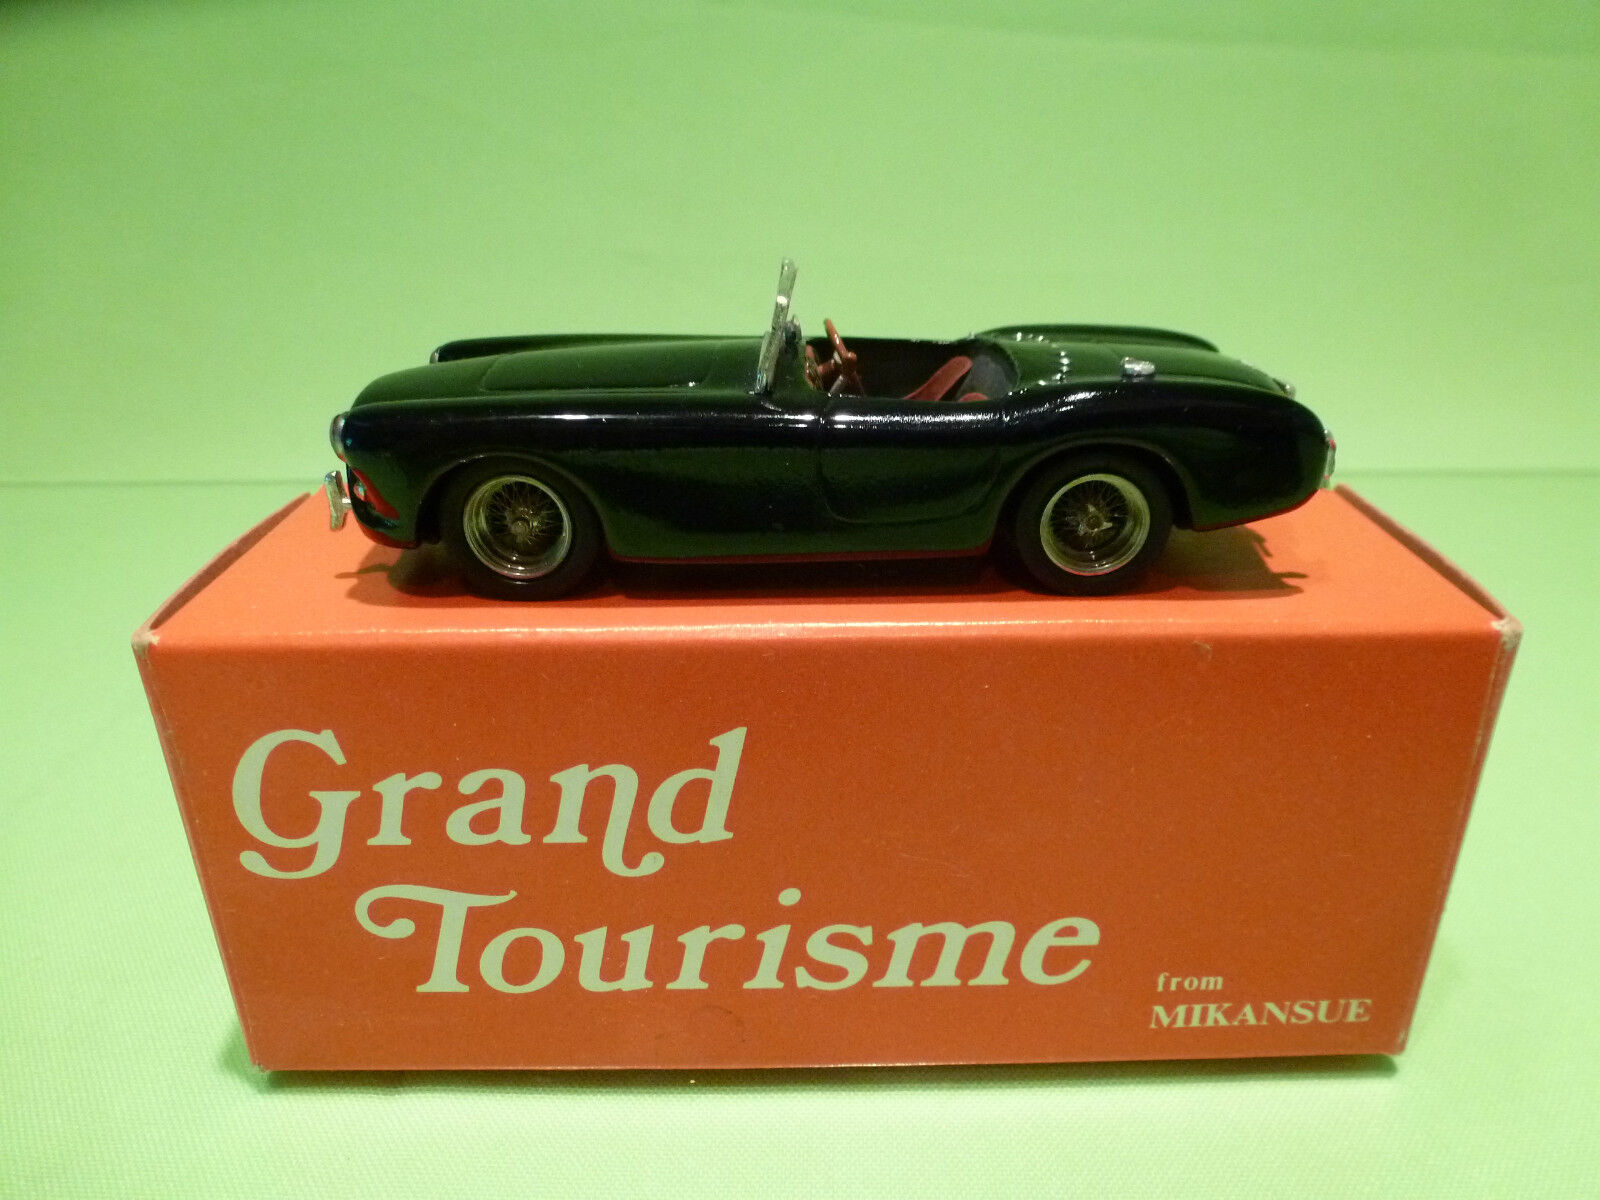 MIKANSUE  A.C.ACE SPORTS GRAND TOURISME     - 1 43  - IN BOX  - GOOD CONDITION  wholesape pas cher